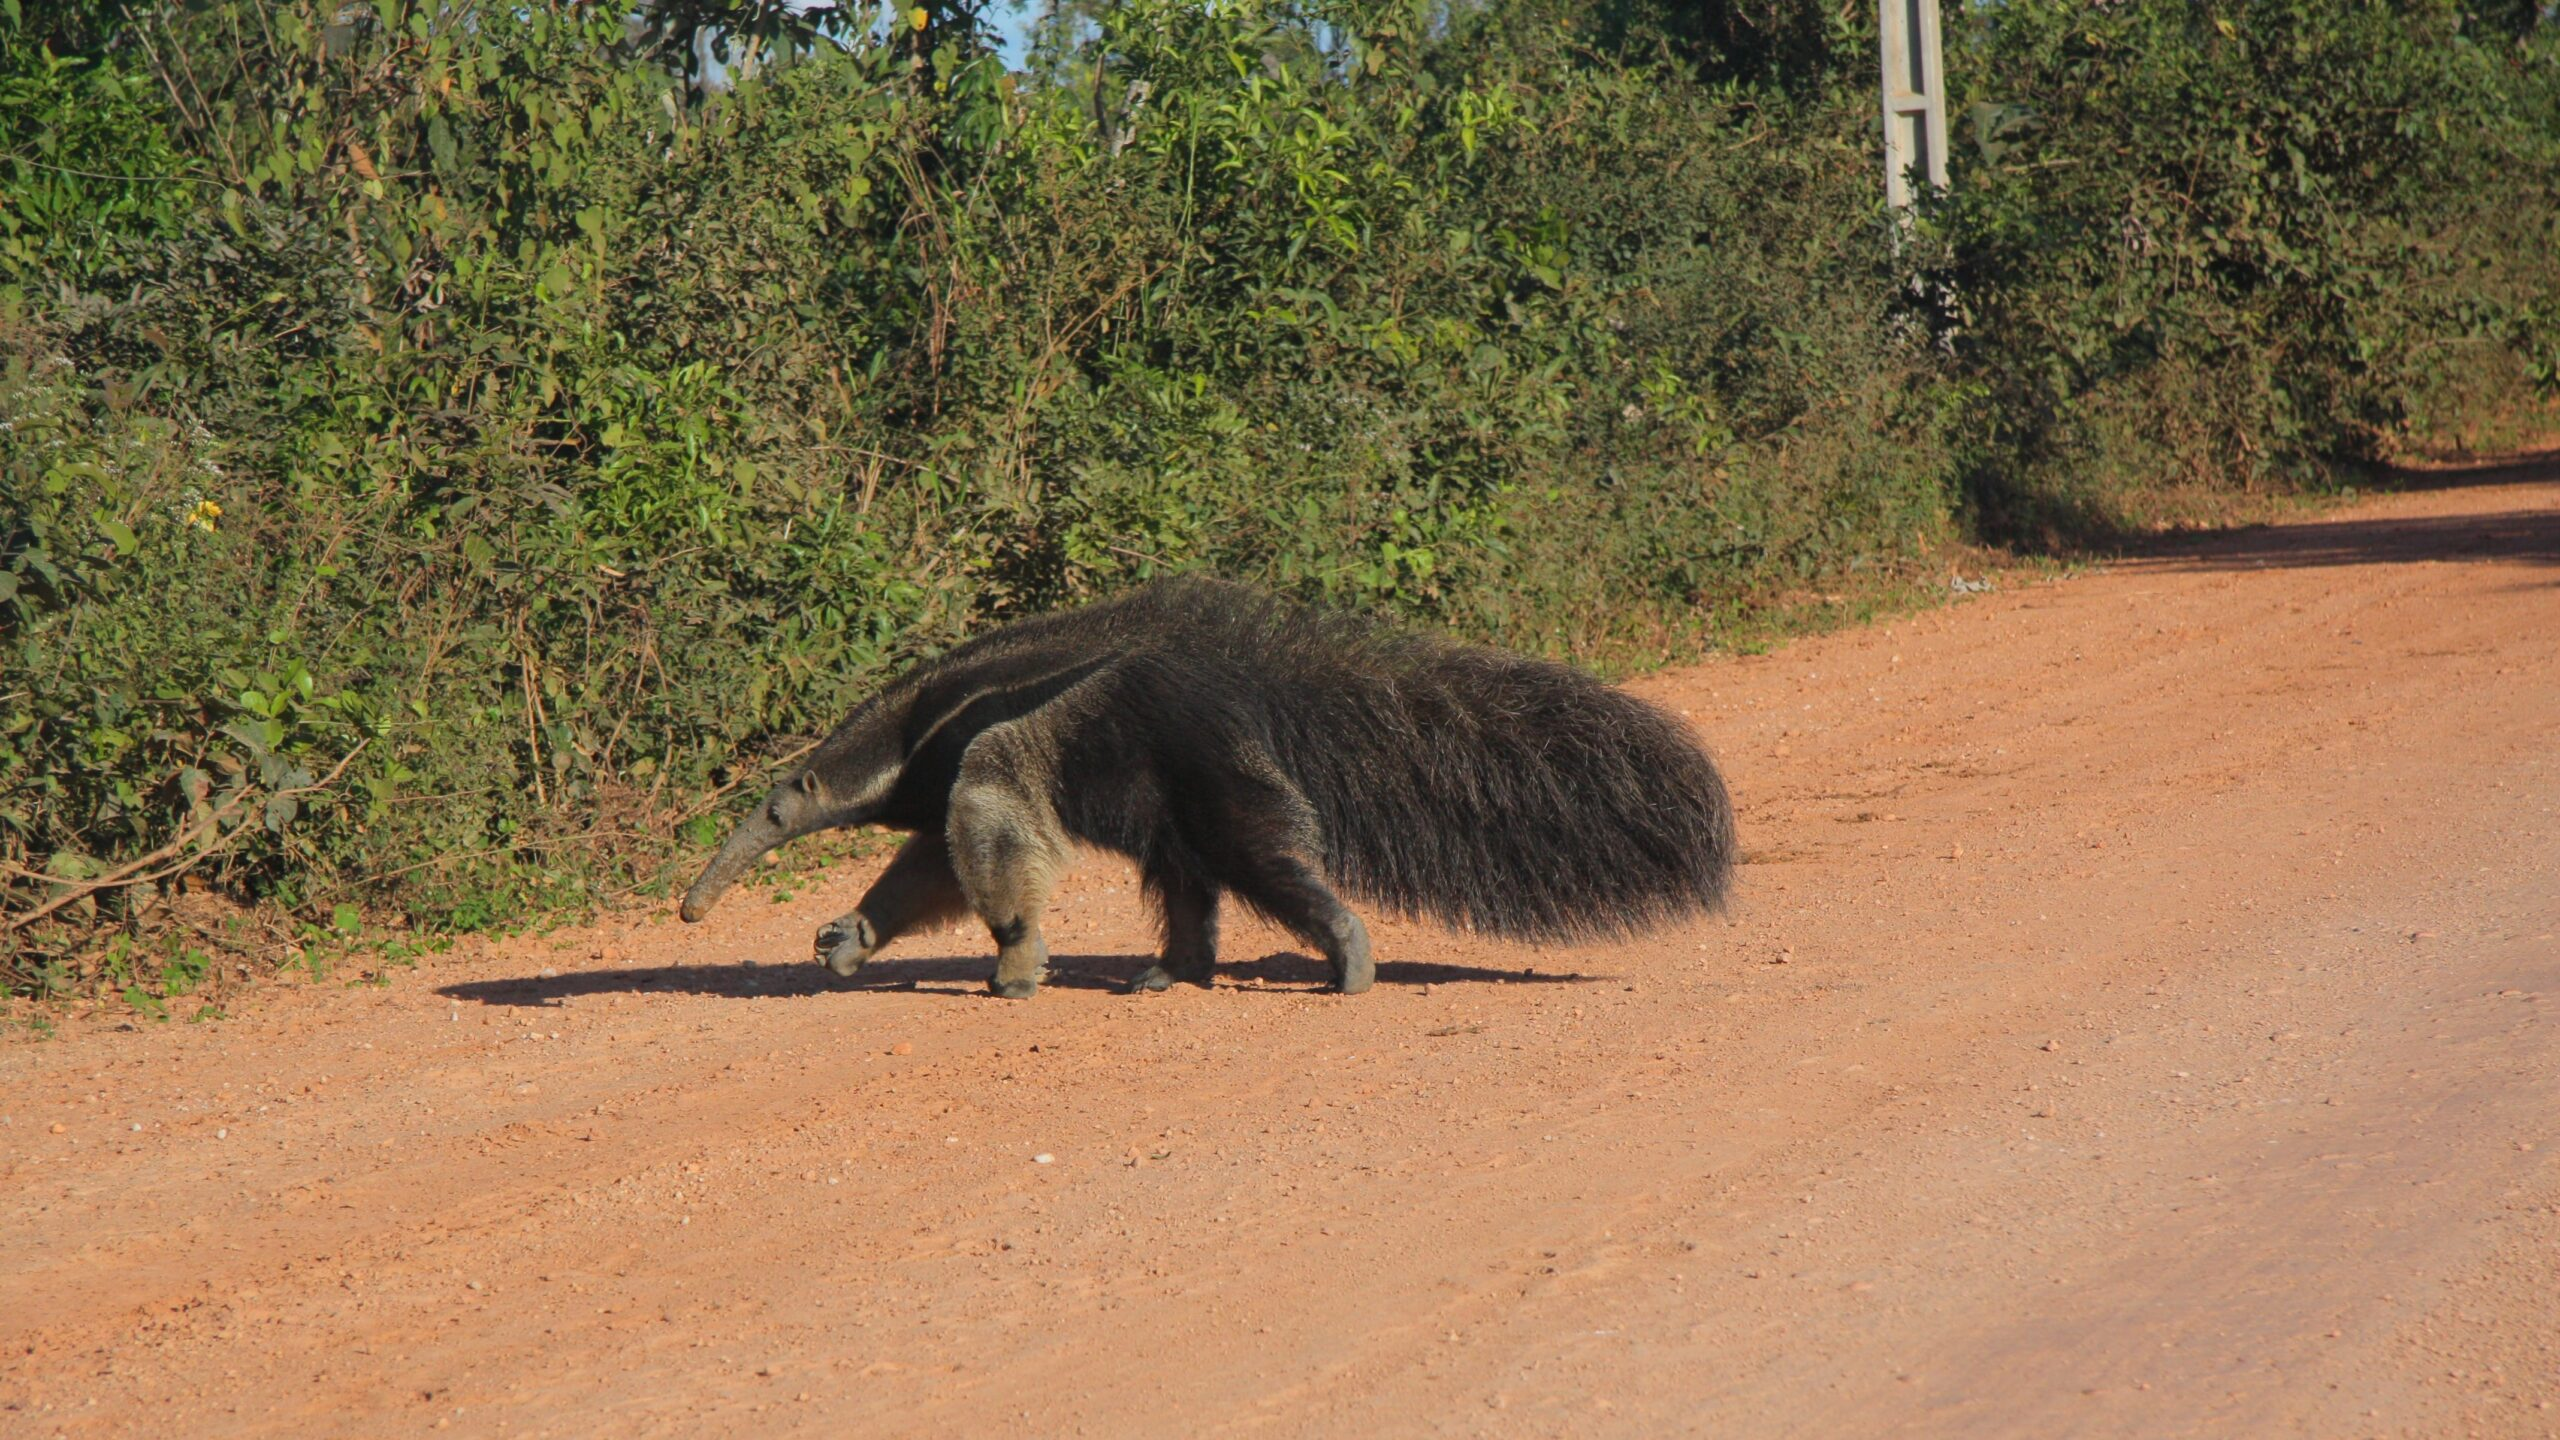 Truck Driver Saves Anteater From Certain Death On Road